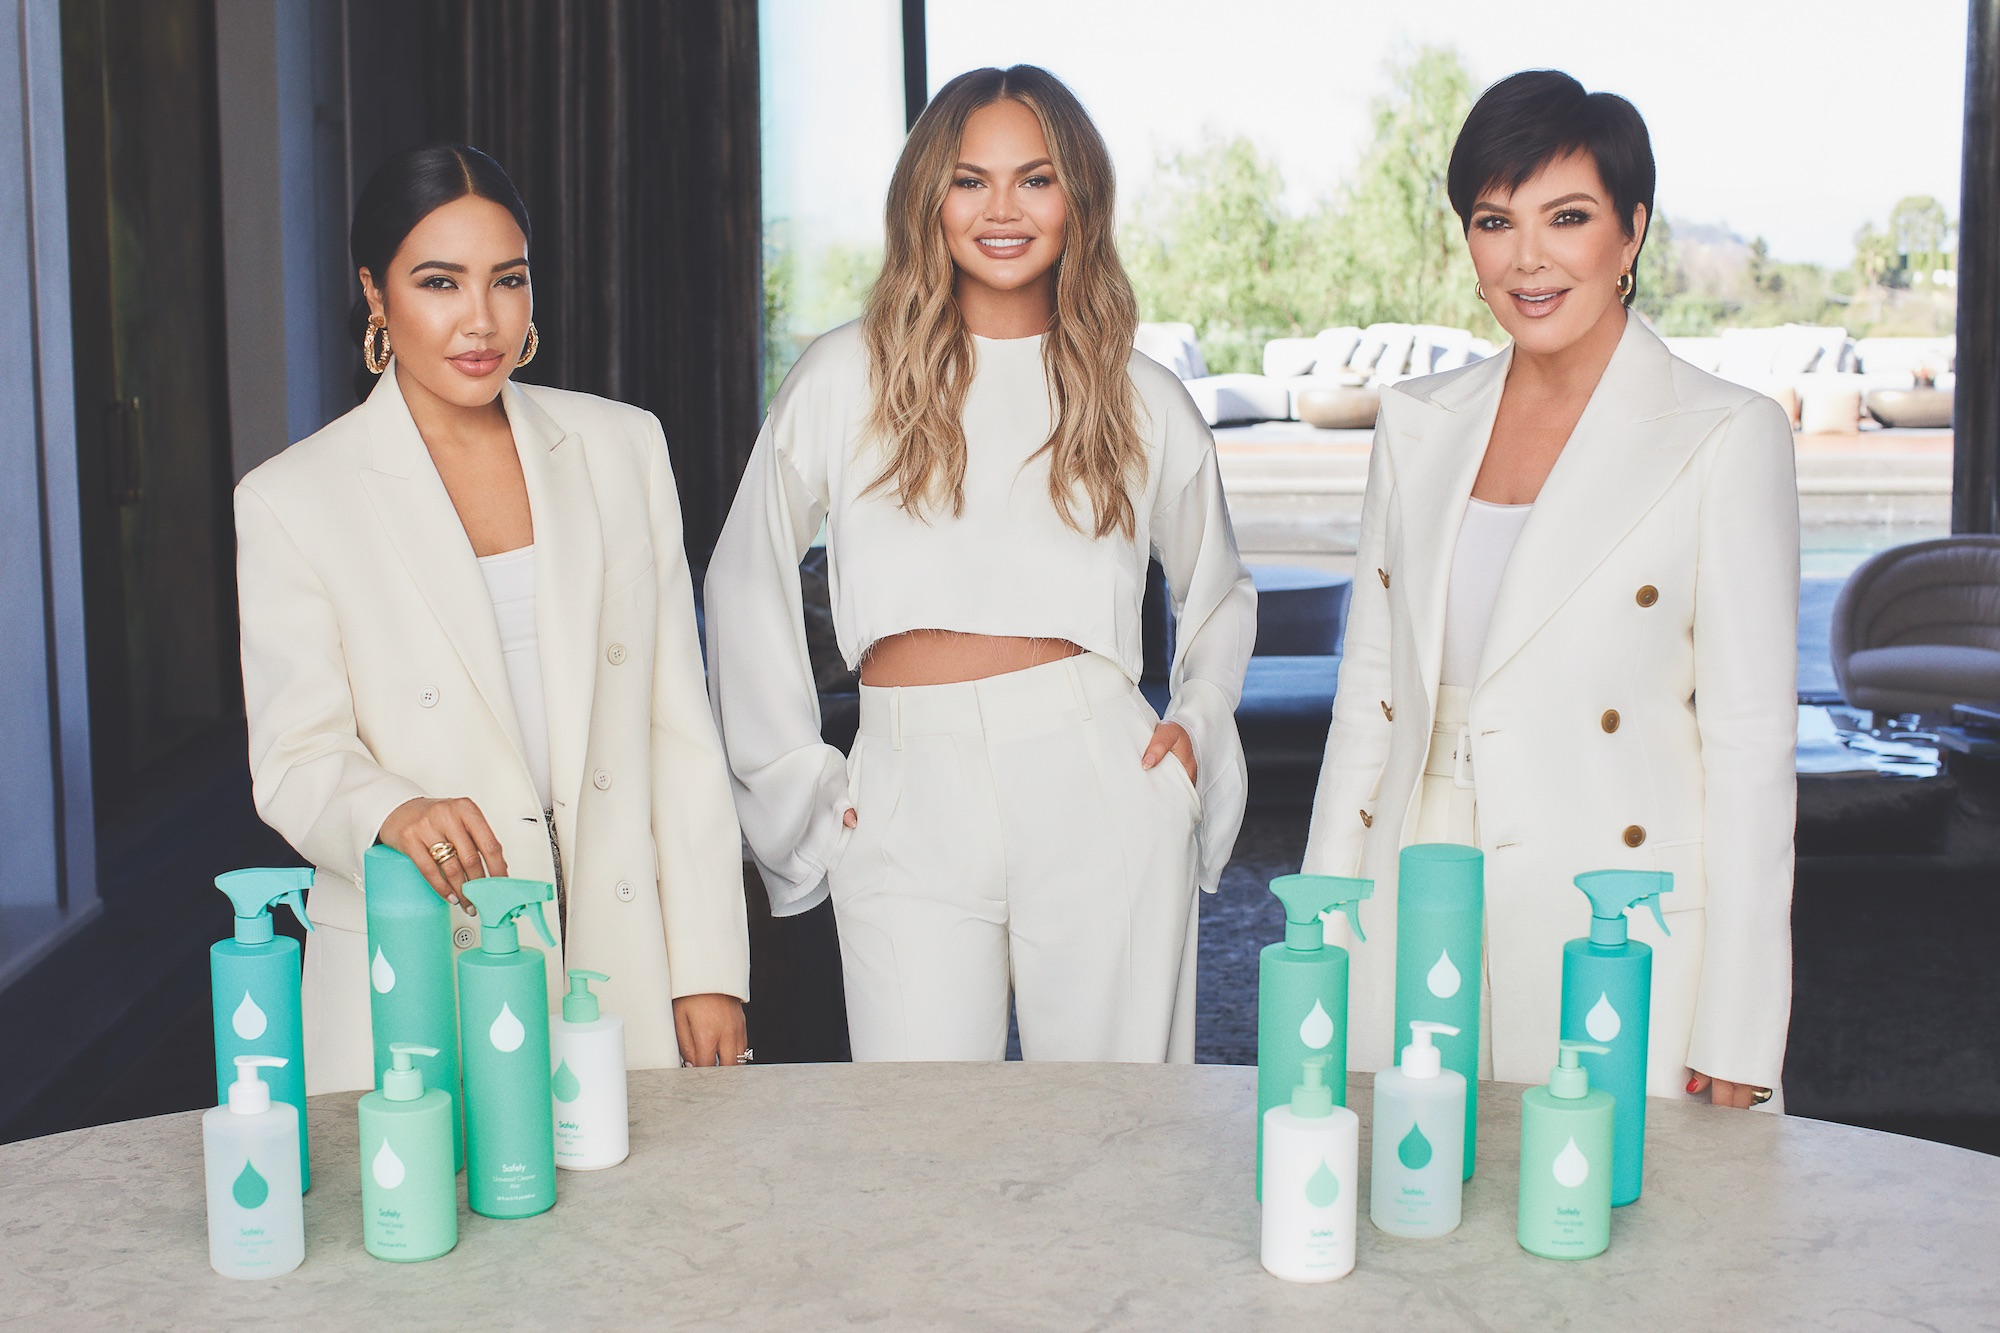 Safely Co-Founders, Chrissy Teigen, Kris Jenner, and Emma Grede